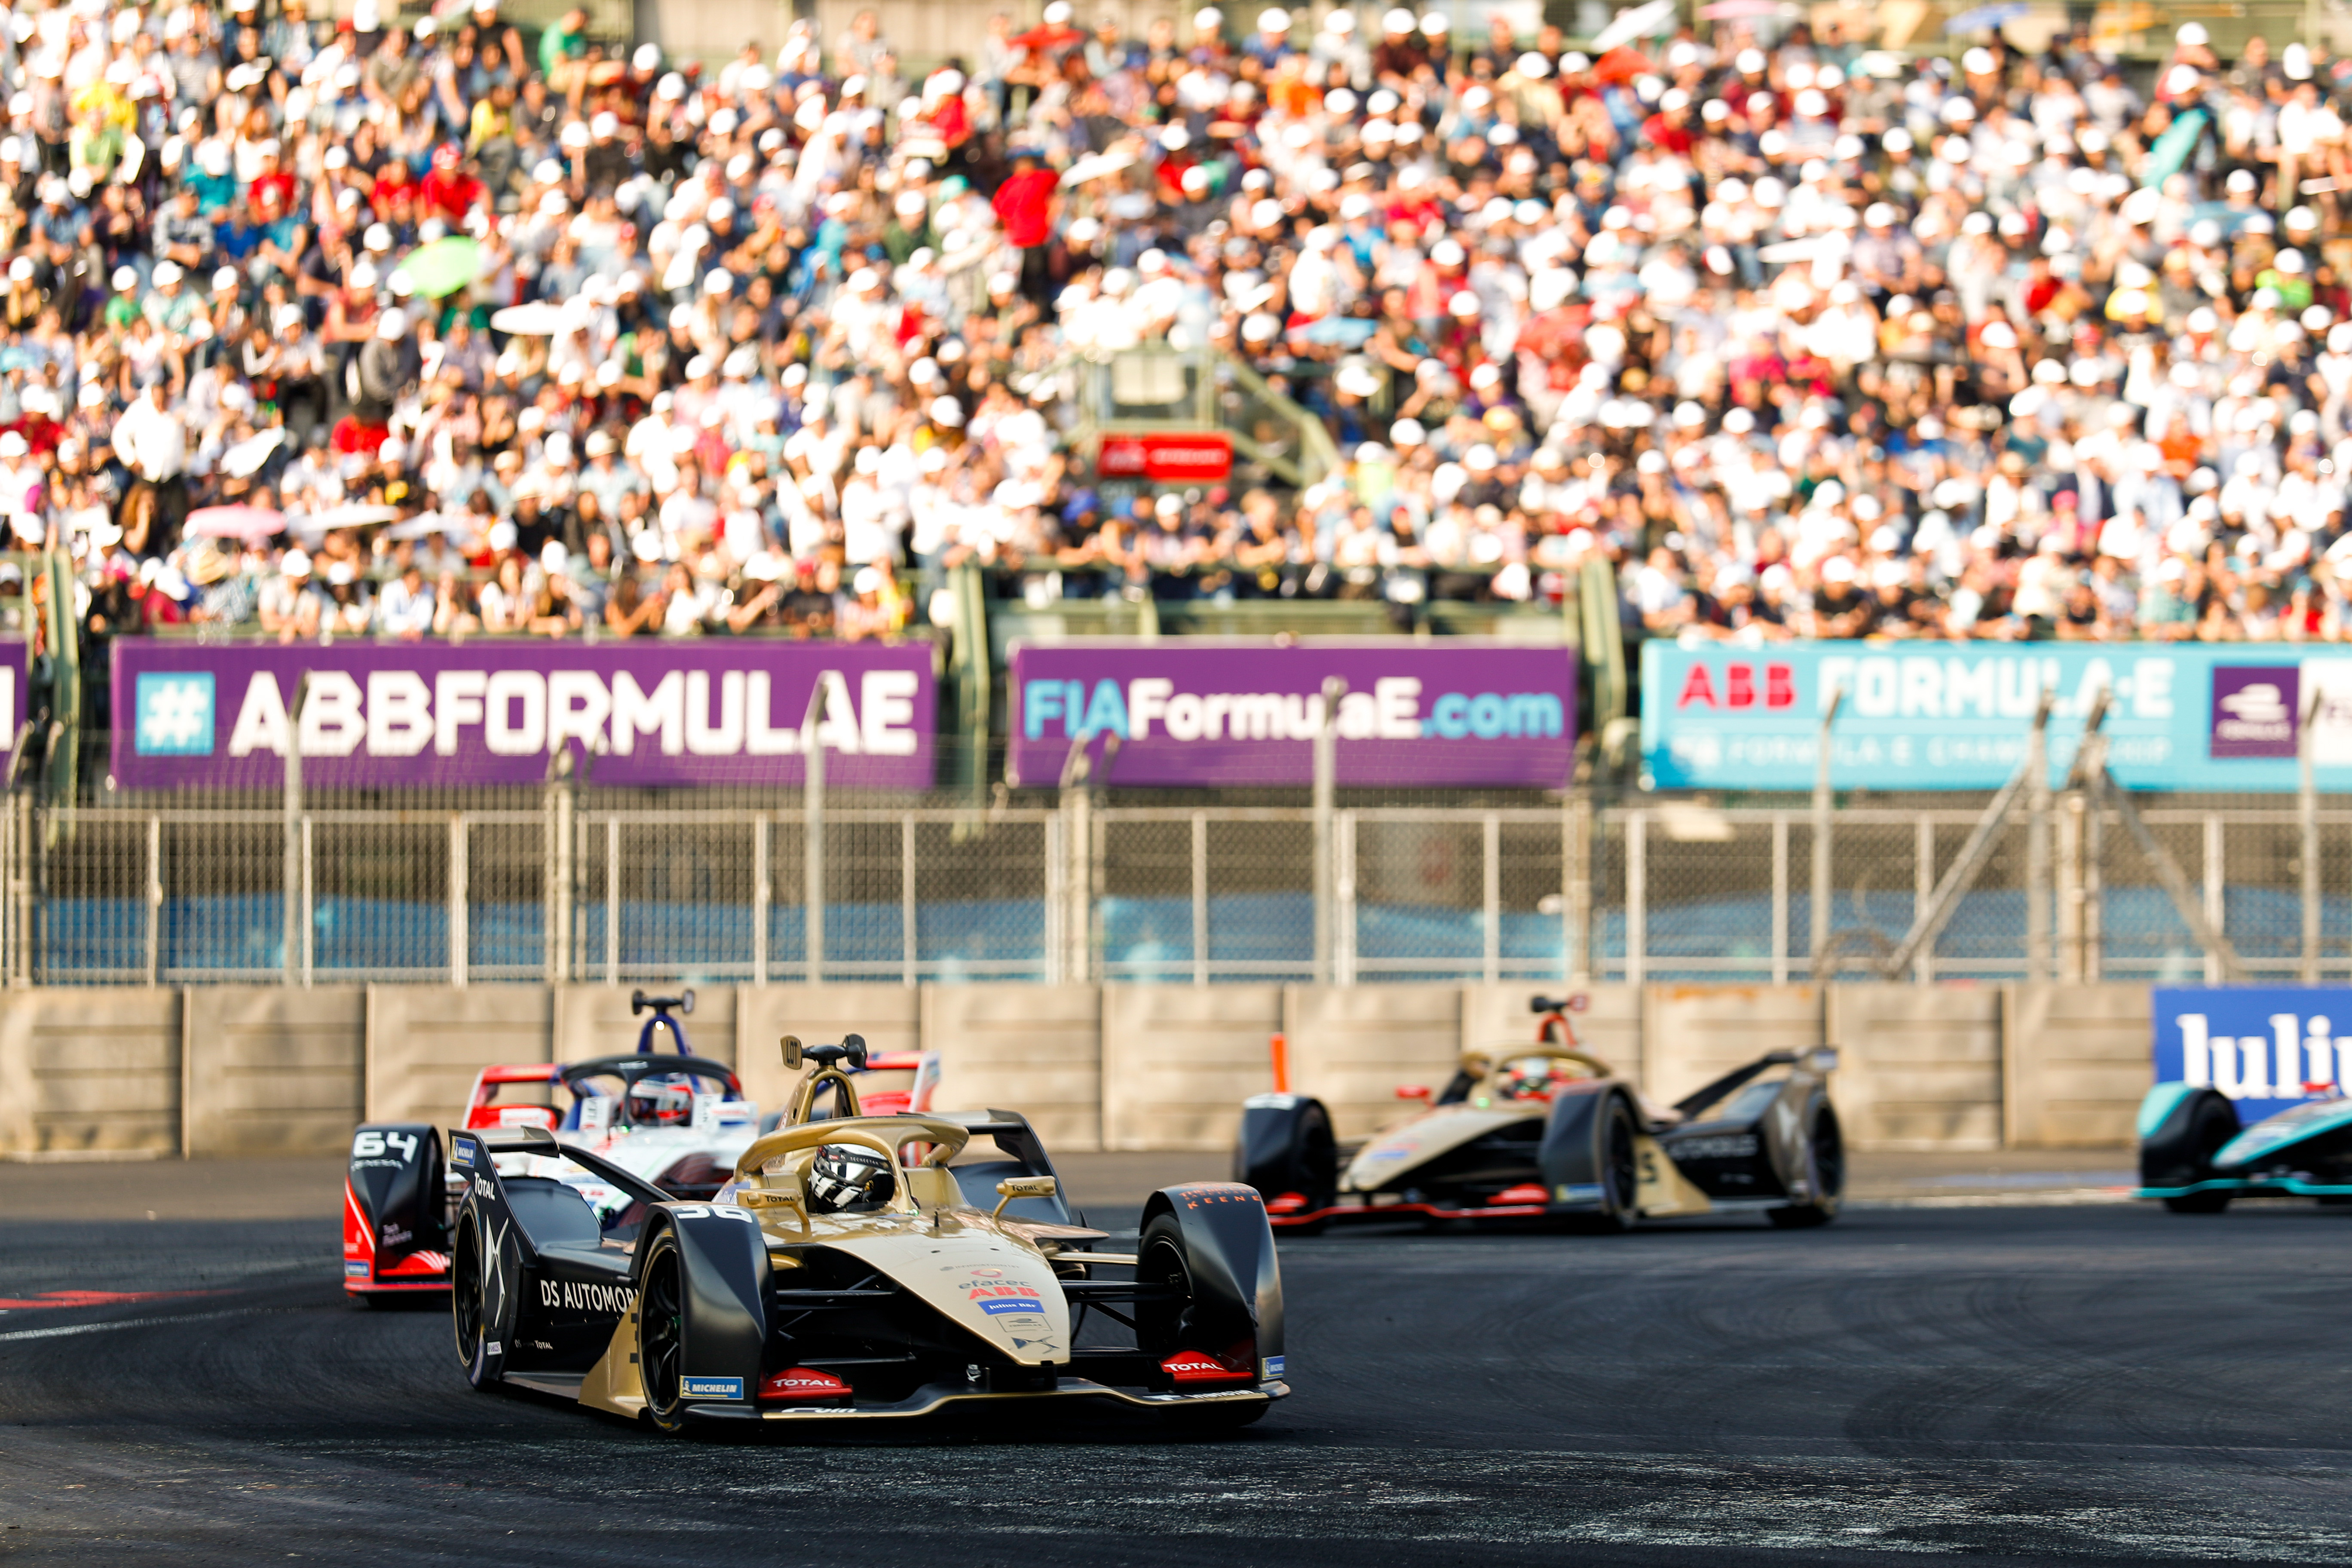 DST cars in Mexico City Eprix